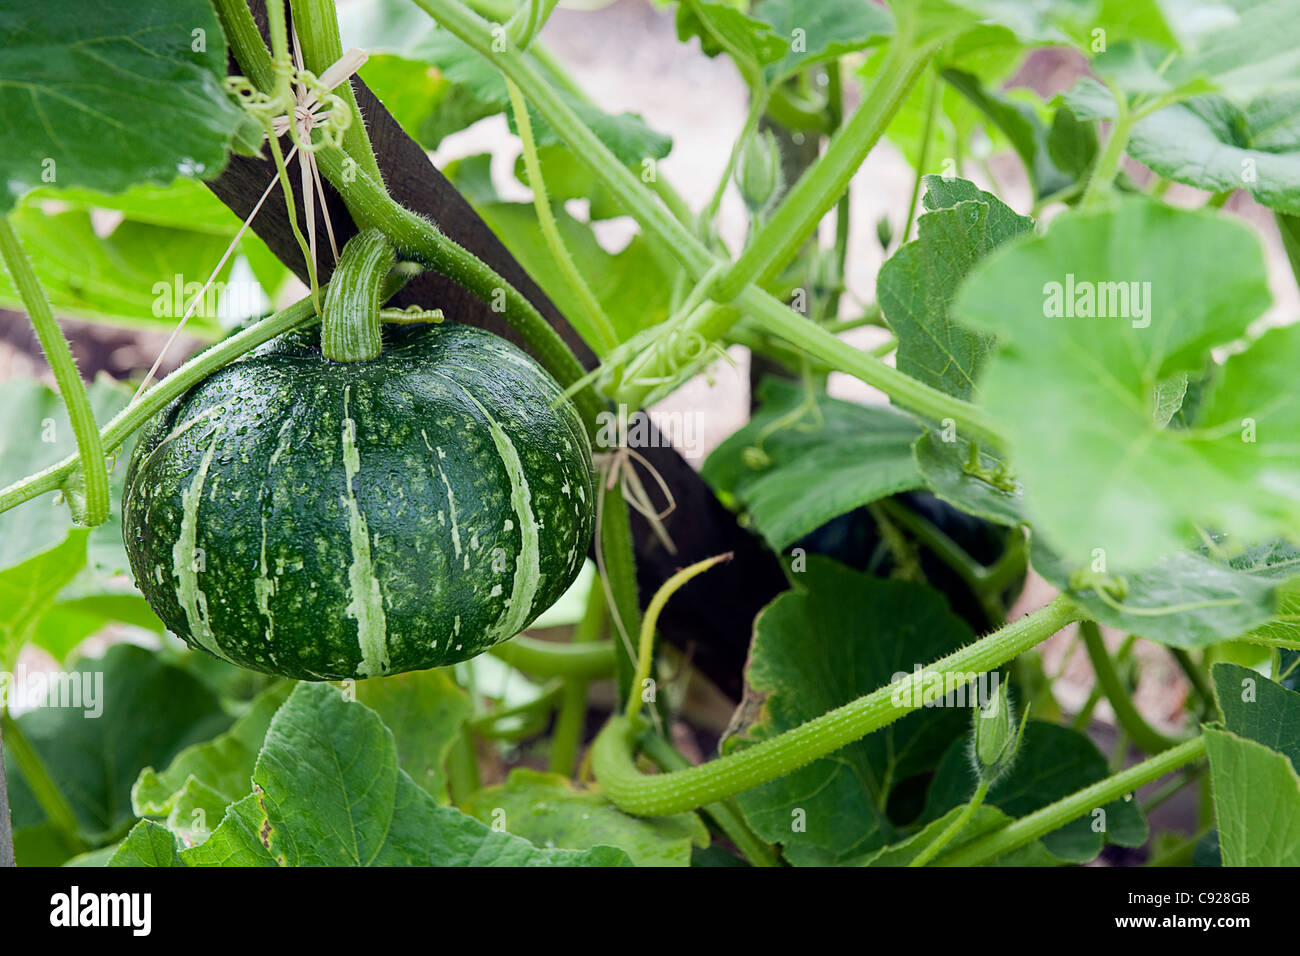 how to grow kabocha squash from seeds